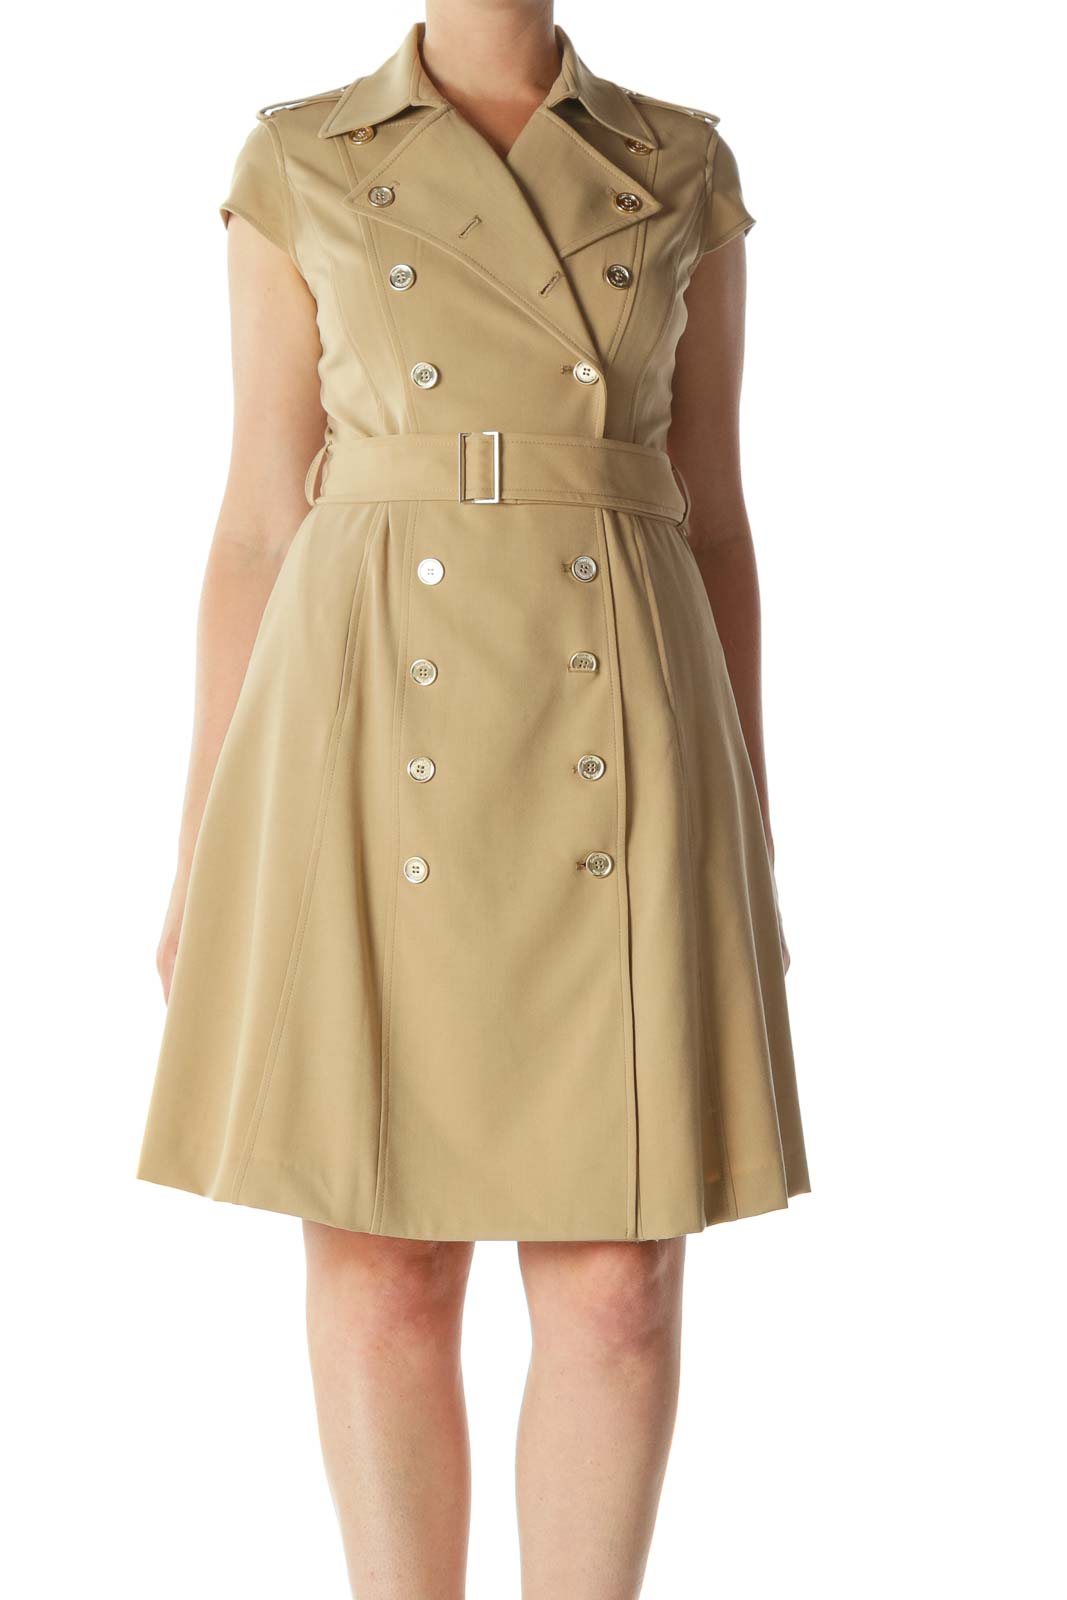 Beige Double-Breasted Buttoned Cap-Sleeves Dress